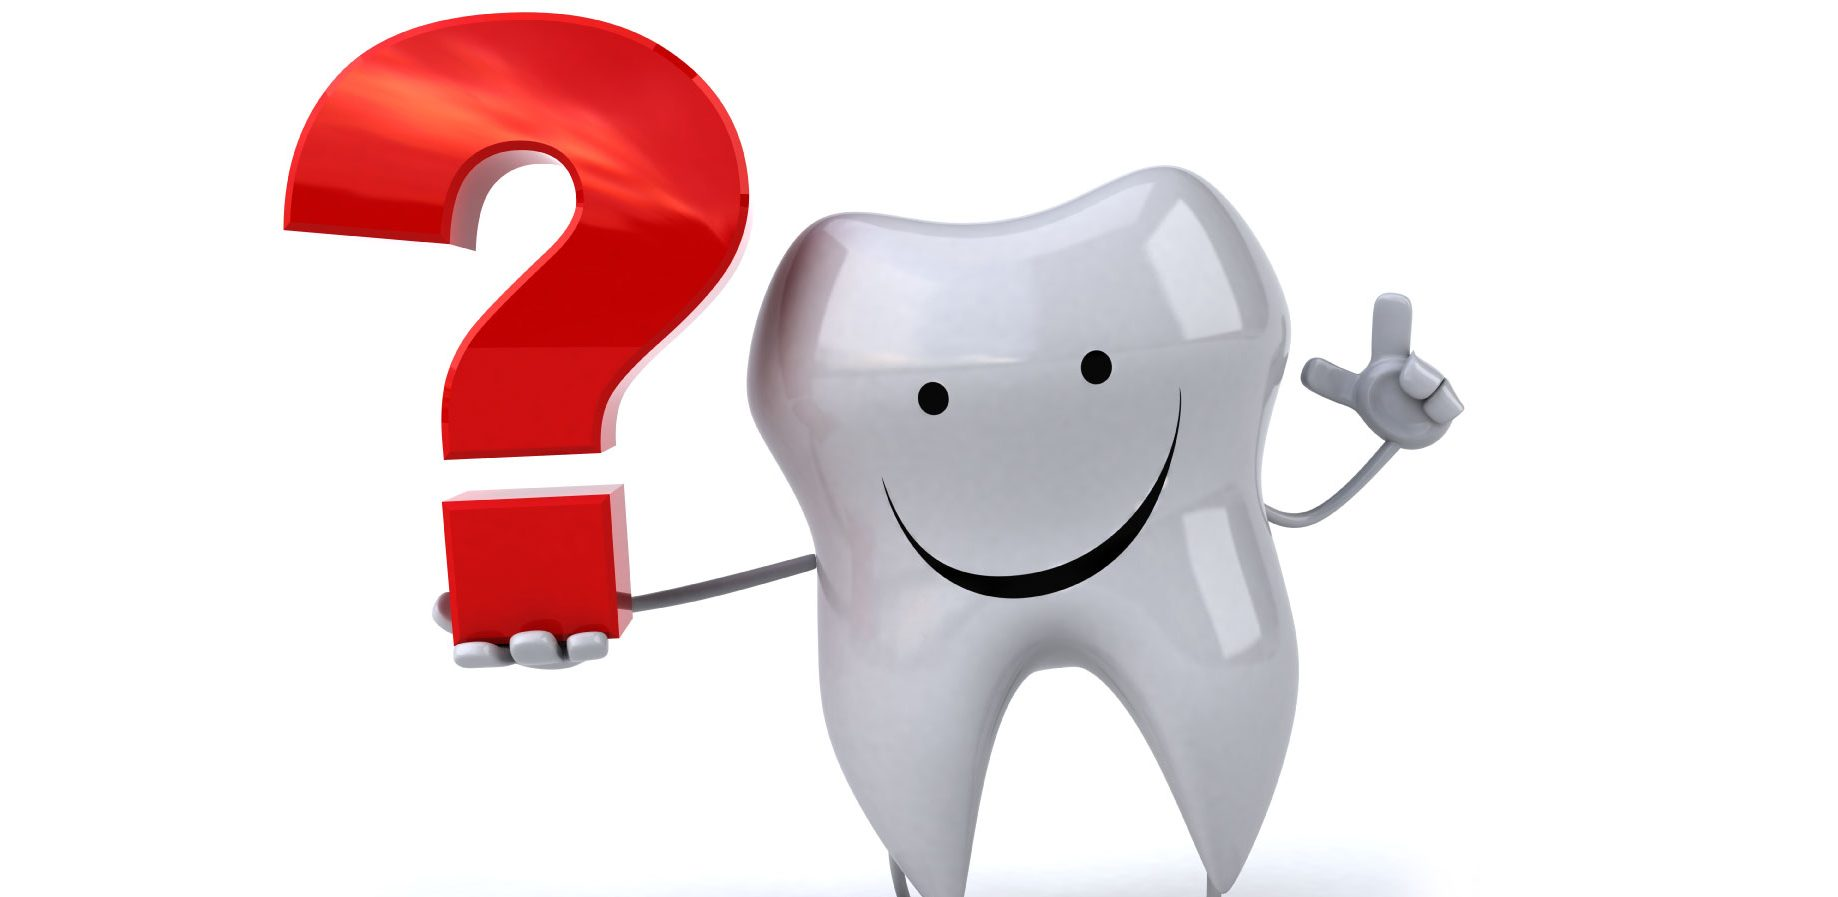 Get your Dental Care Questions Answered and More on HarborPointDentist.com